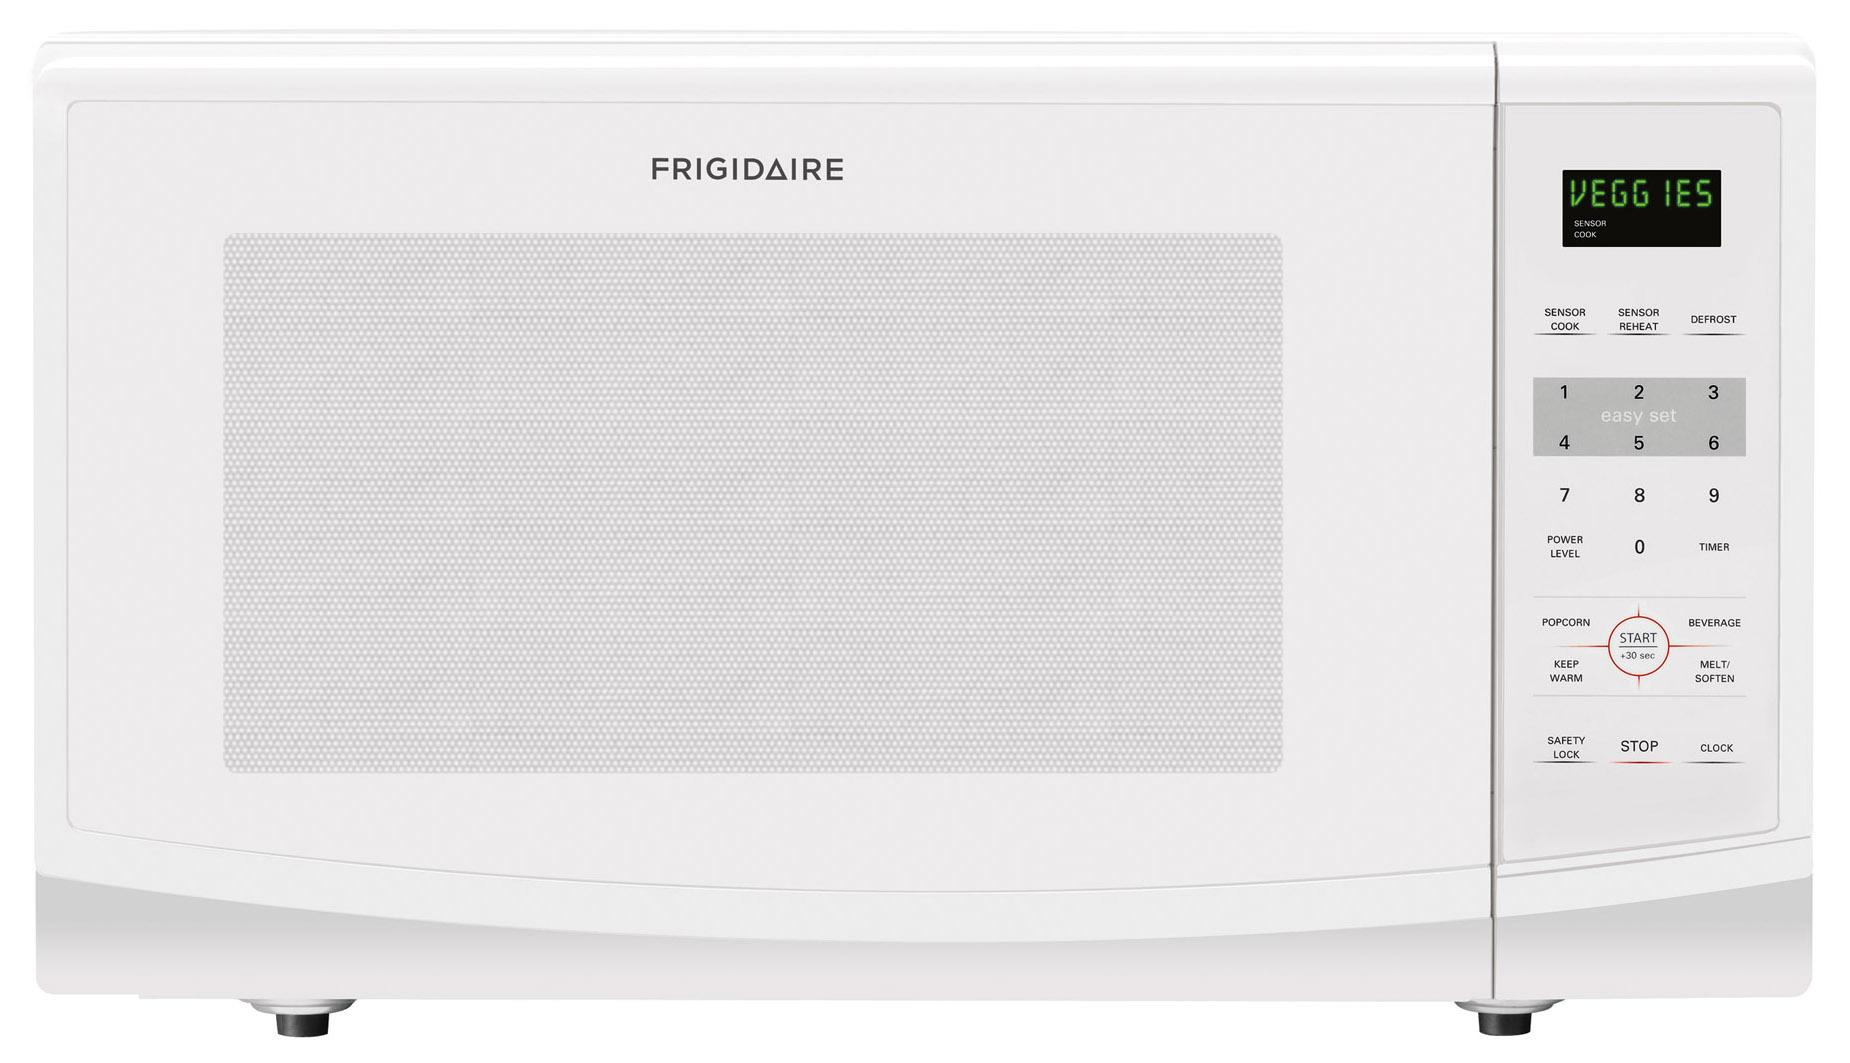 Frigidaire Microwaves 2.2 Cu. Ft. Countertop Microwave - Item Number: FFCE2238LW